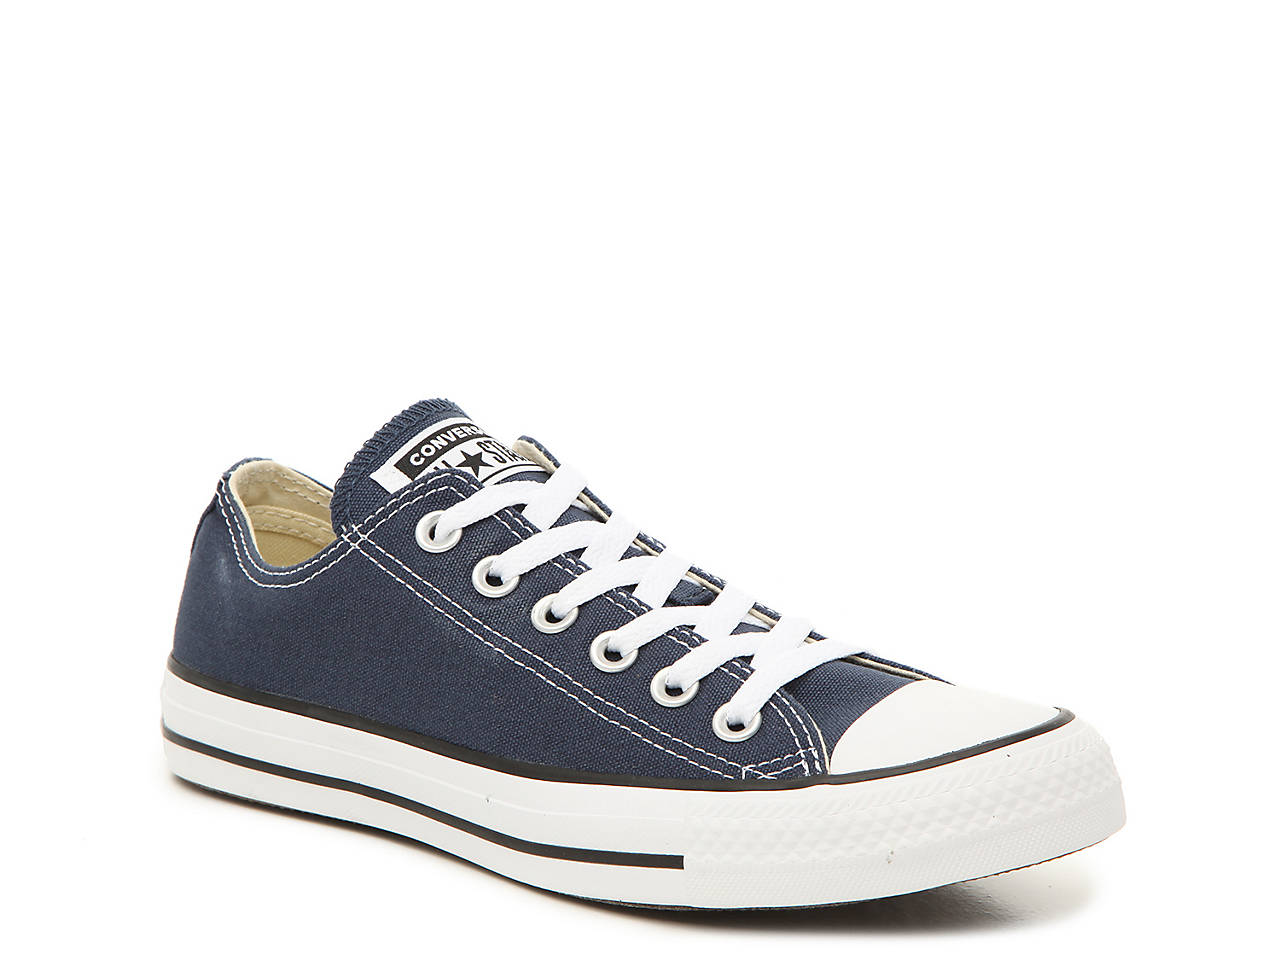 Womens Converse High Top Tennis Shoes